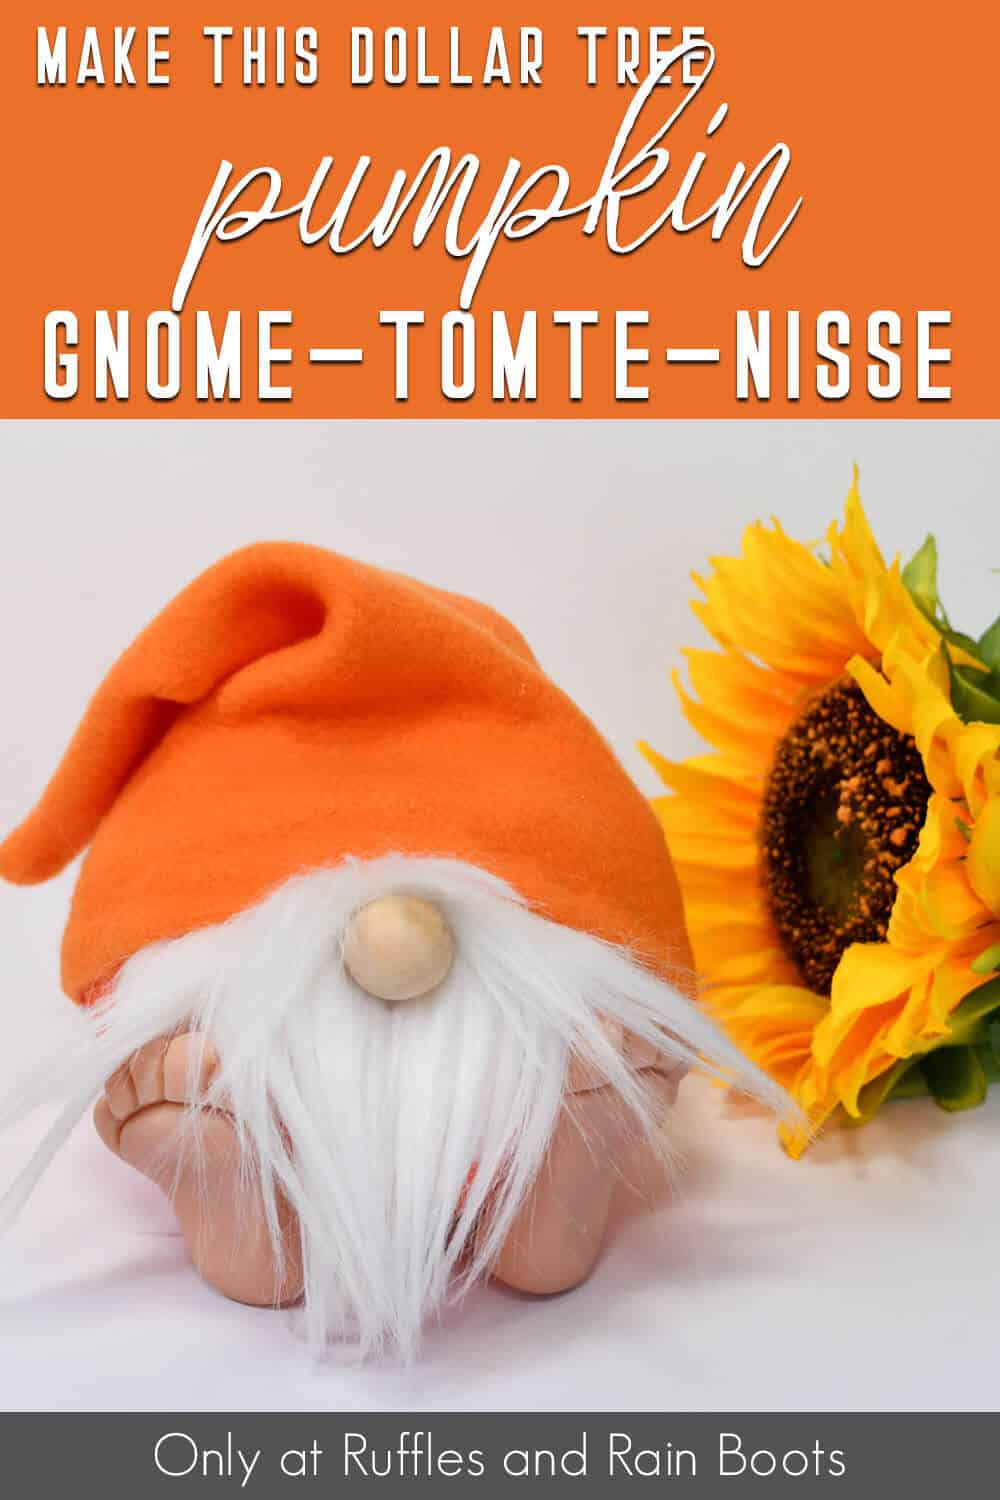 dollar tree craft pumpkin gnome with feet with text which reads make this dollar tree pumpkin gnome tomte nisse